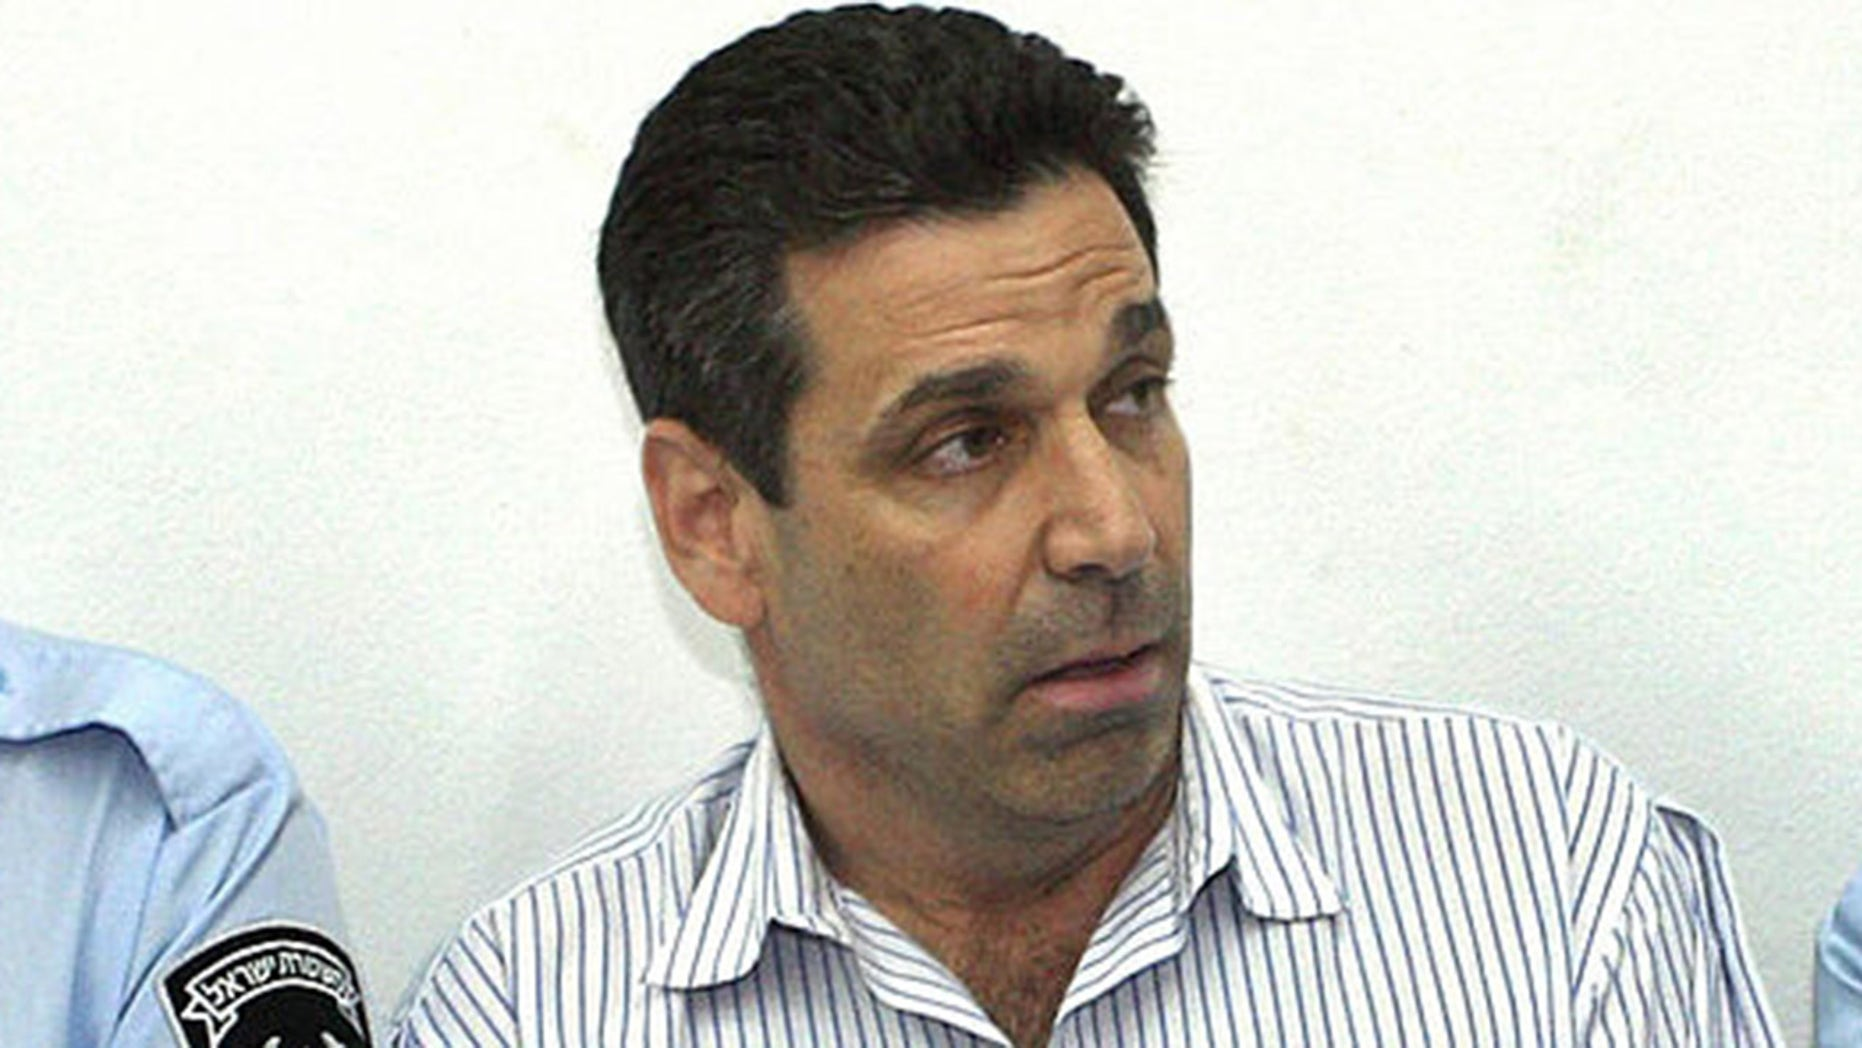 Gonen Segev, a former Israeli lawmaker, has been accused of spying for Iran.